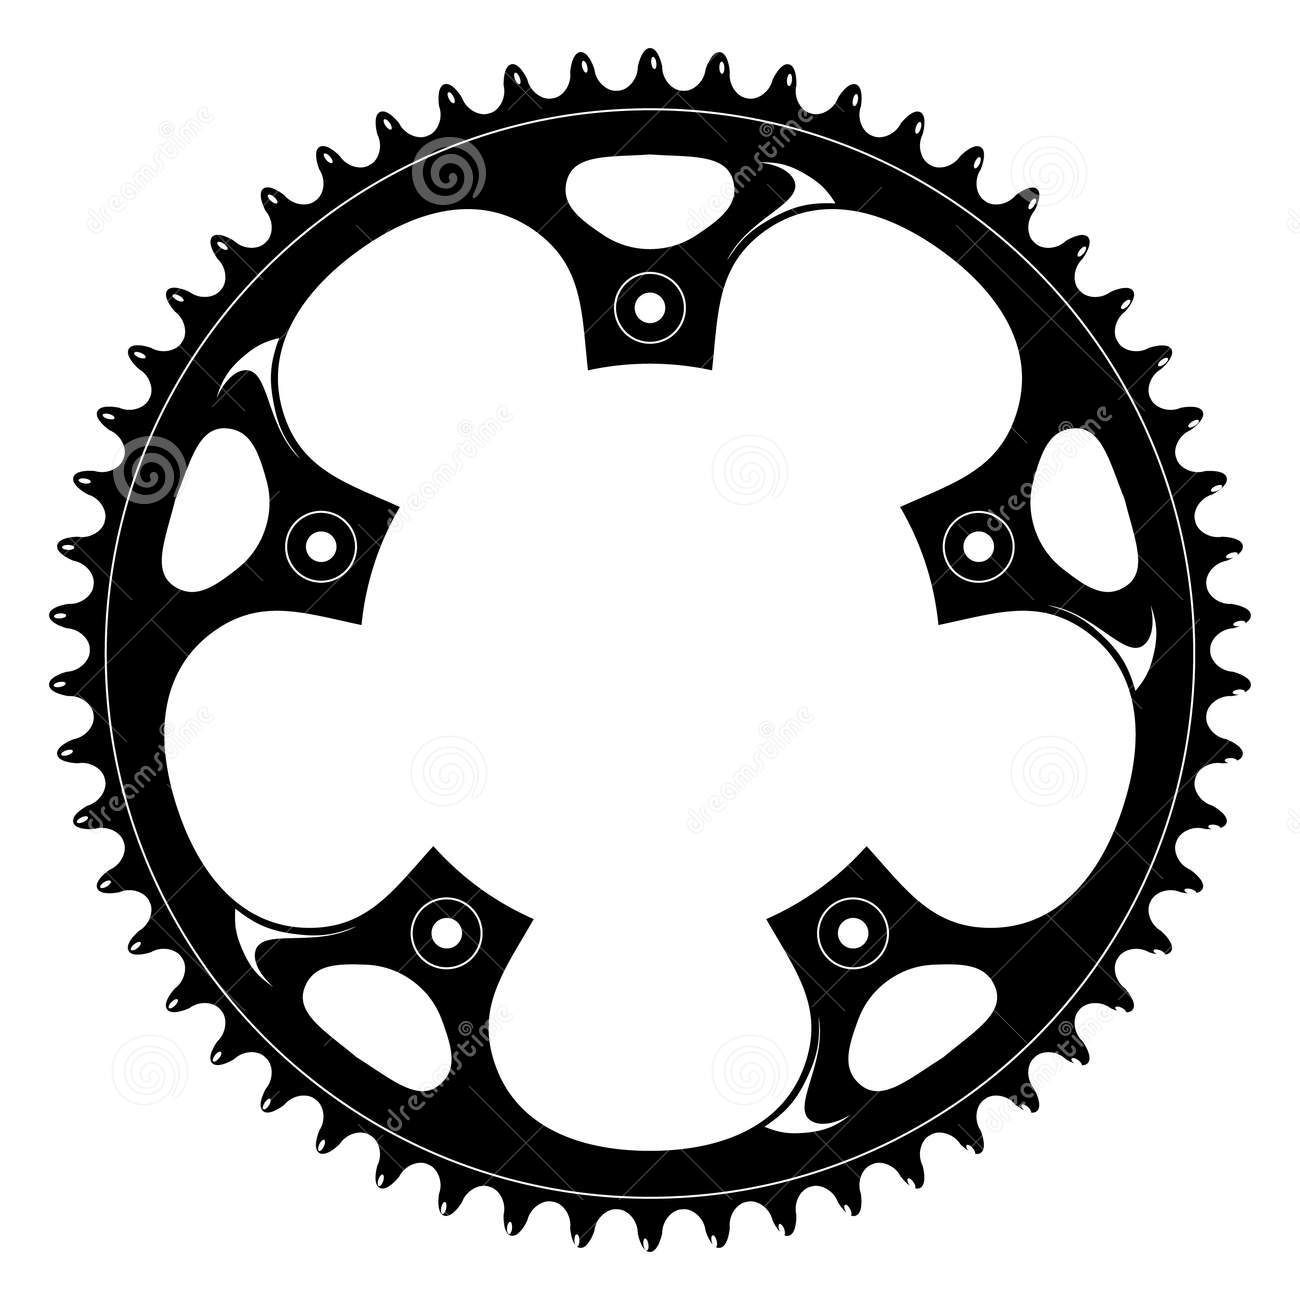 Steampunk clipart bike gear. Gears bicycle bicycles tattoos